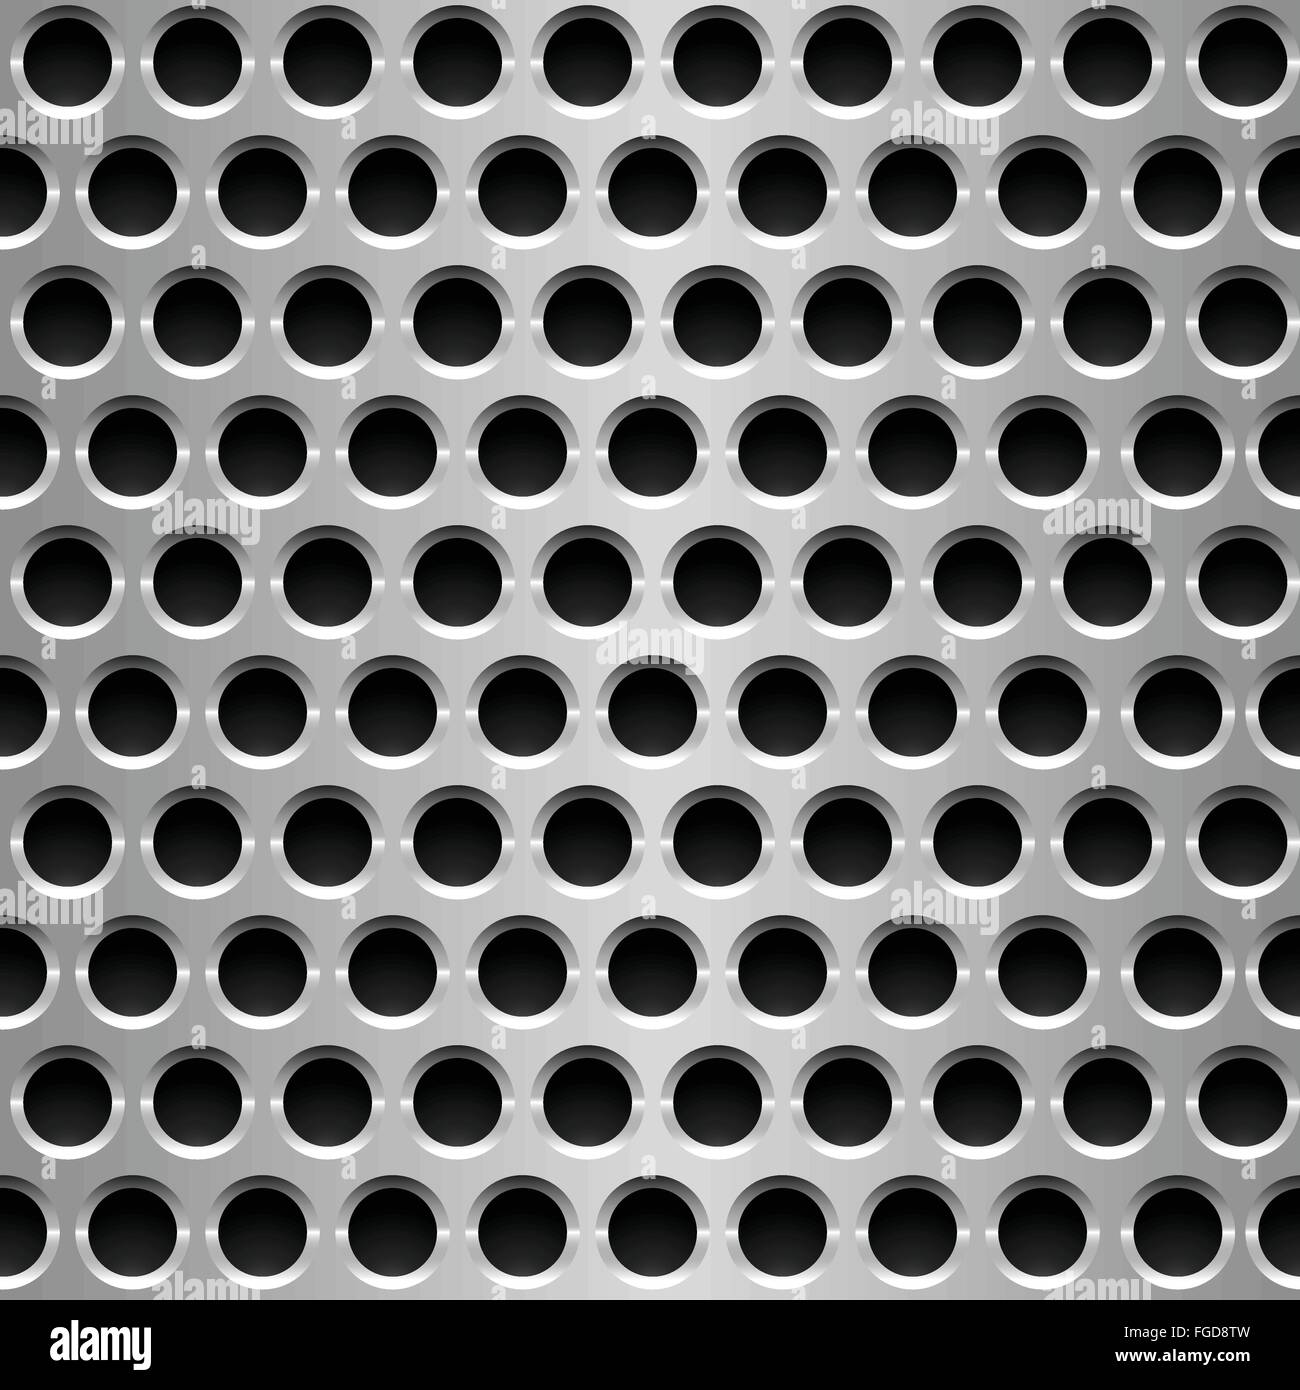 Seamless vector wallpaper of perforated metal plate. - Stock Vector